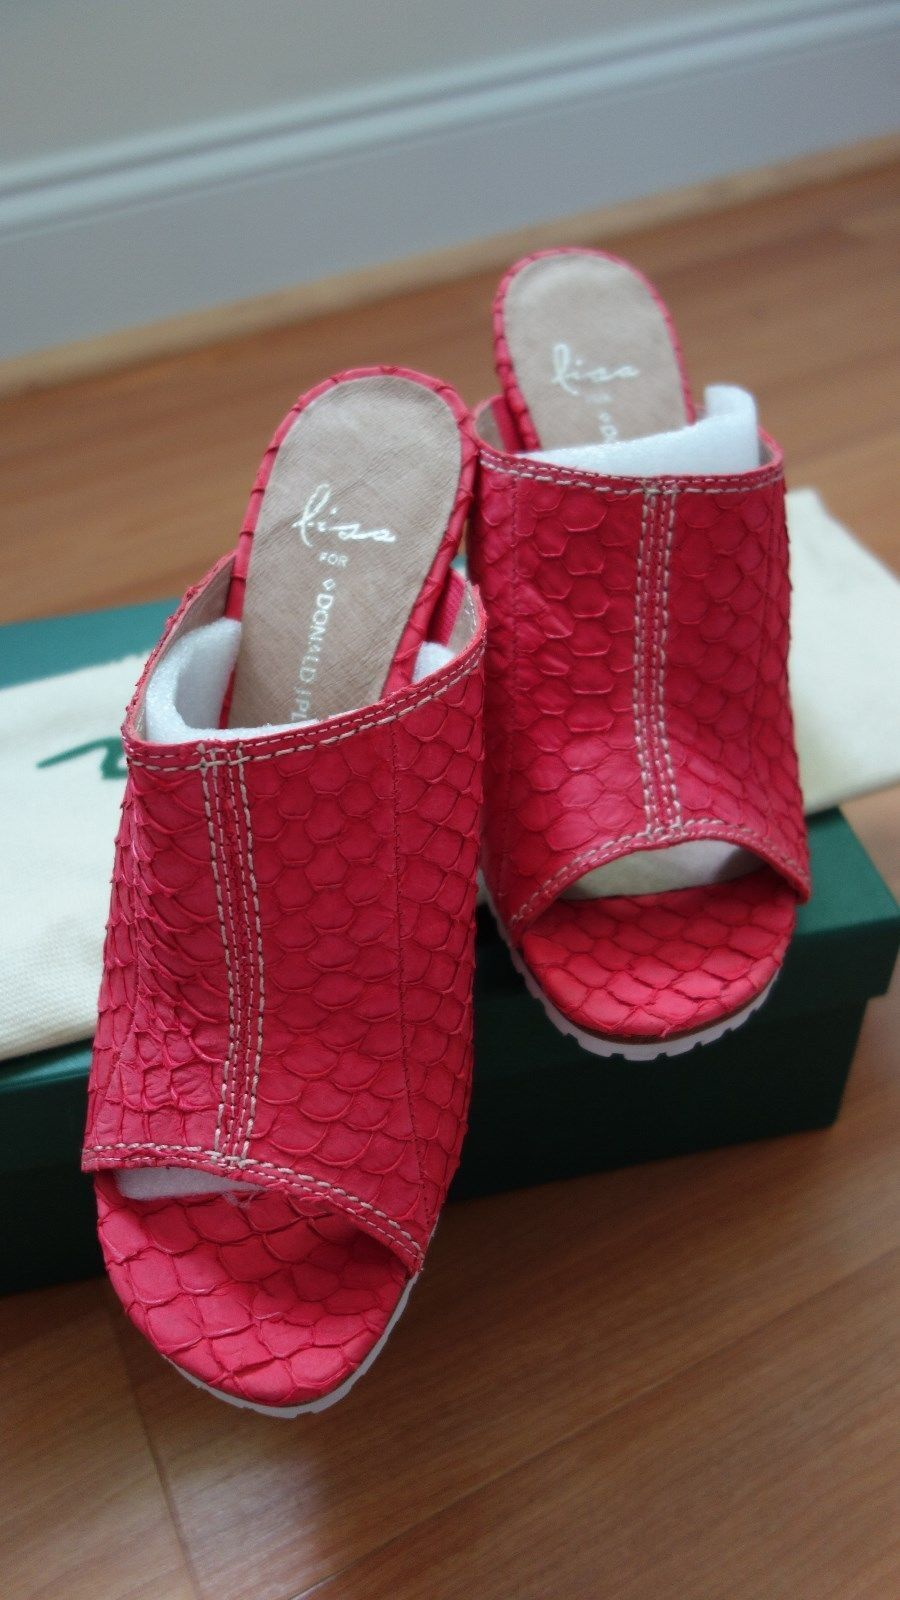 NEW LISA for DONALD DONALD DONALD J PLINER CORAL ISHI FISH LEATHER WOMEN'S Schuhe sz. 8 M fcf8bf